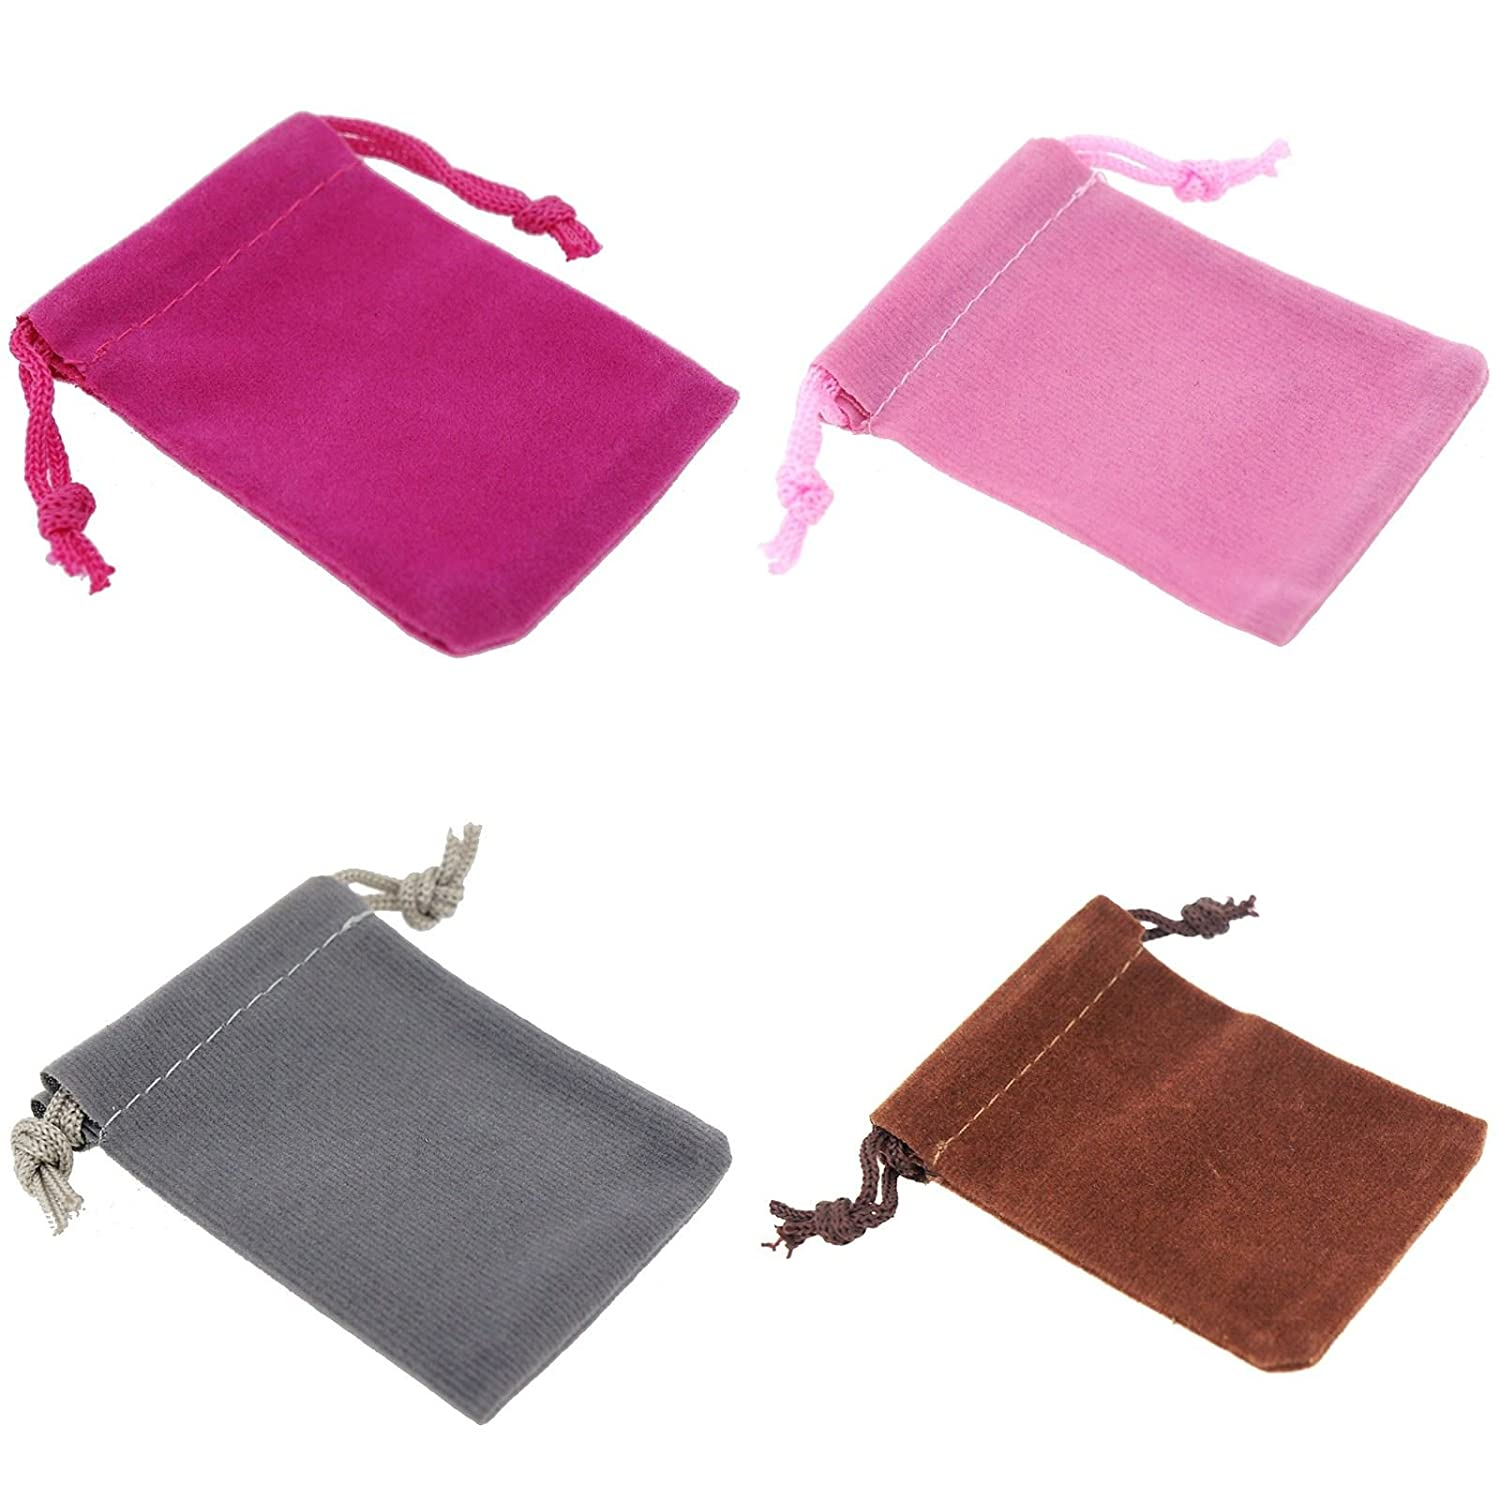 9x12cm Pack of 8 Mix Color Soft Velvet Pouches w Drawstrings for Jewelry Gift Packaging